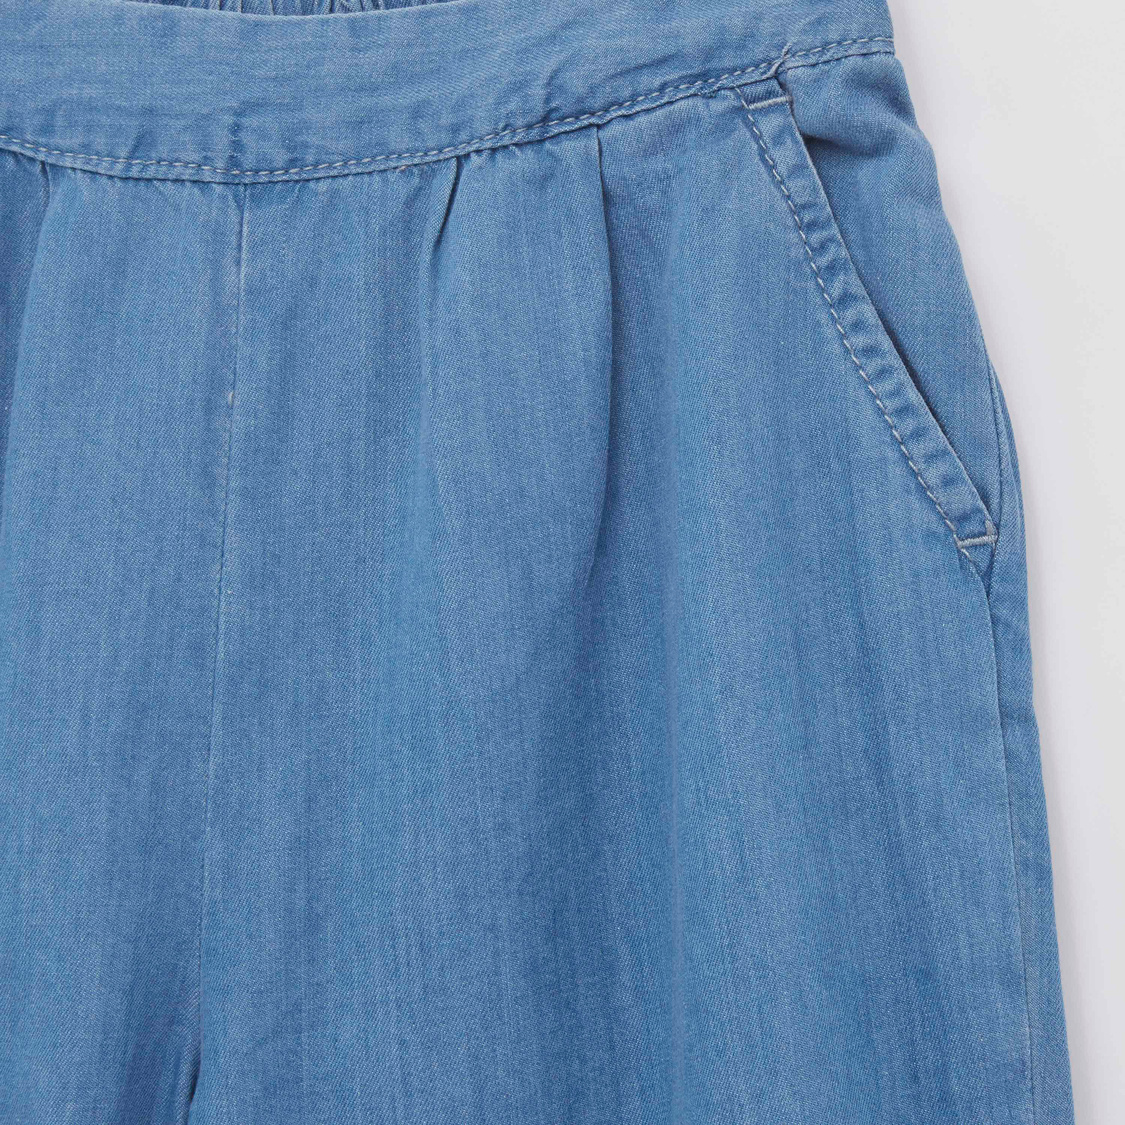 Solid Pants with Pocket Detail and Embroidered Hem